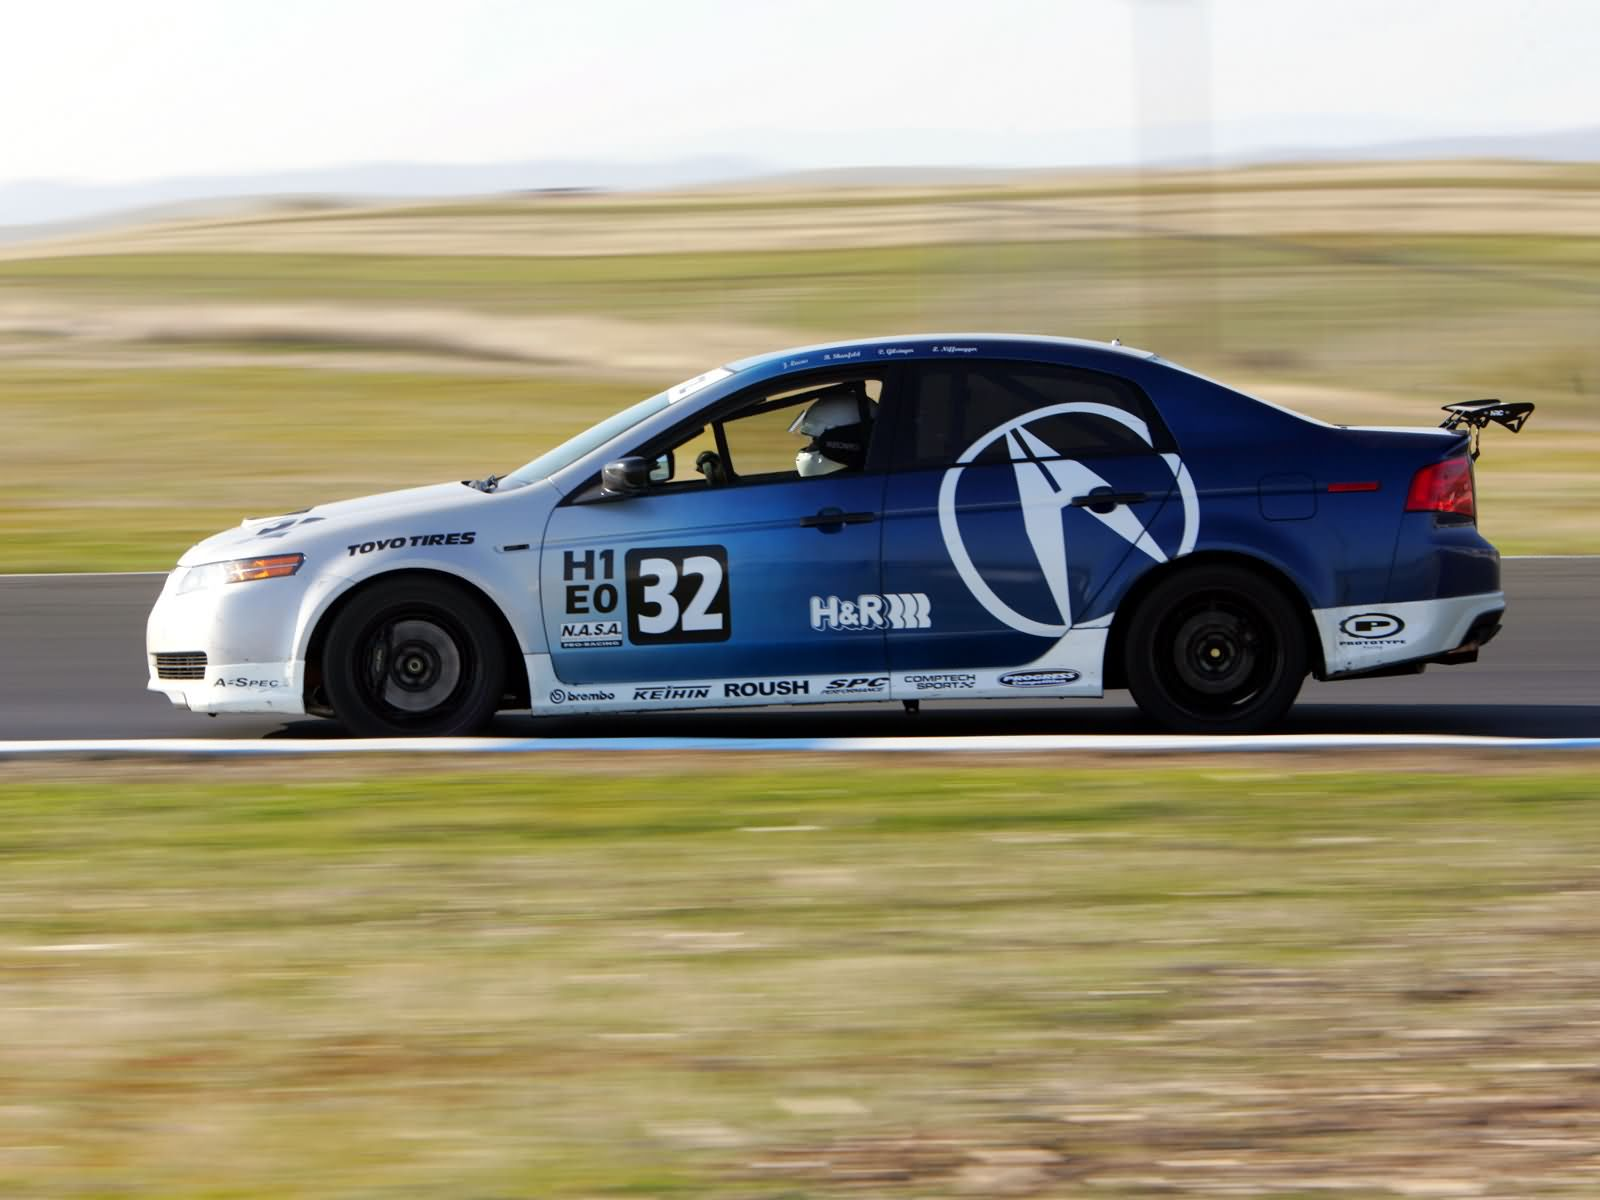 Acura TL 25 Hours of Thunderhill photo 17835